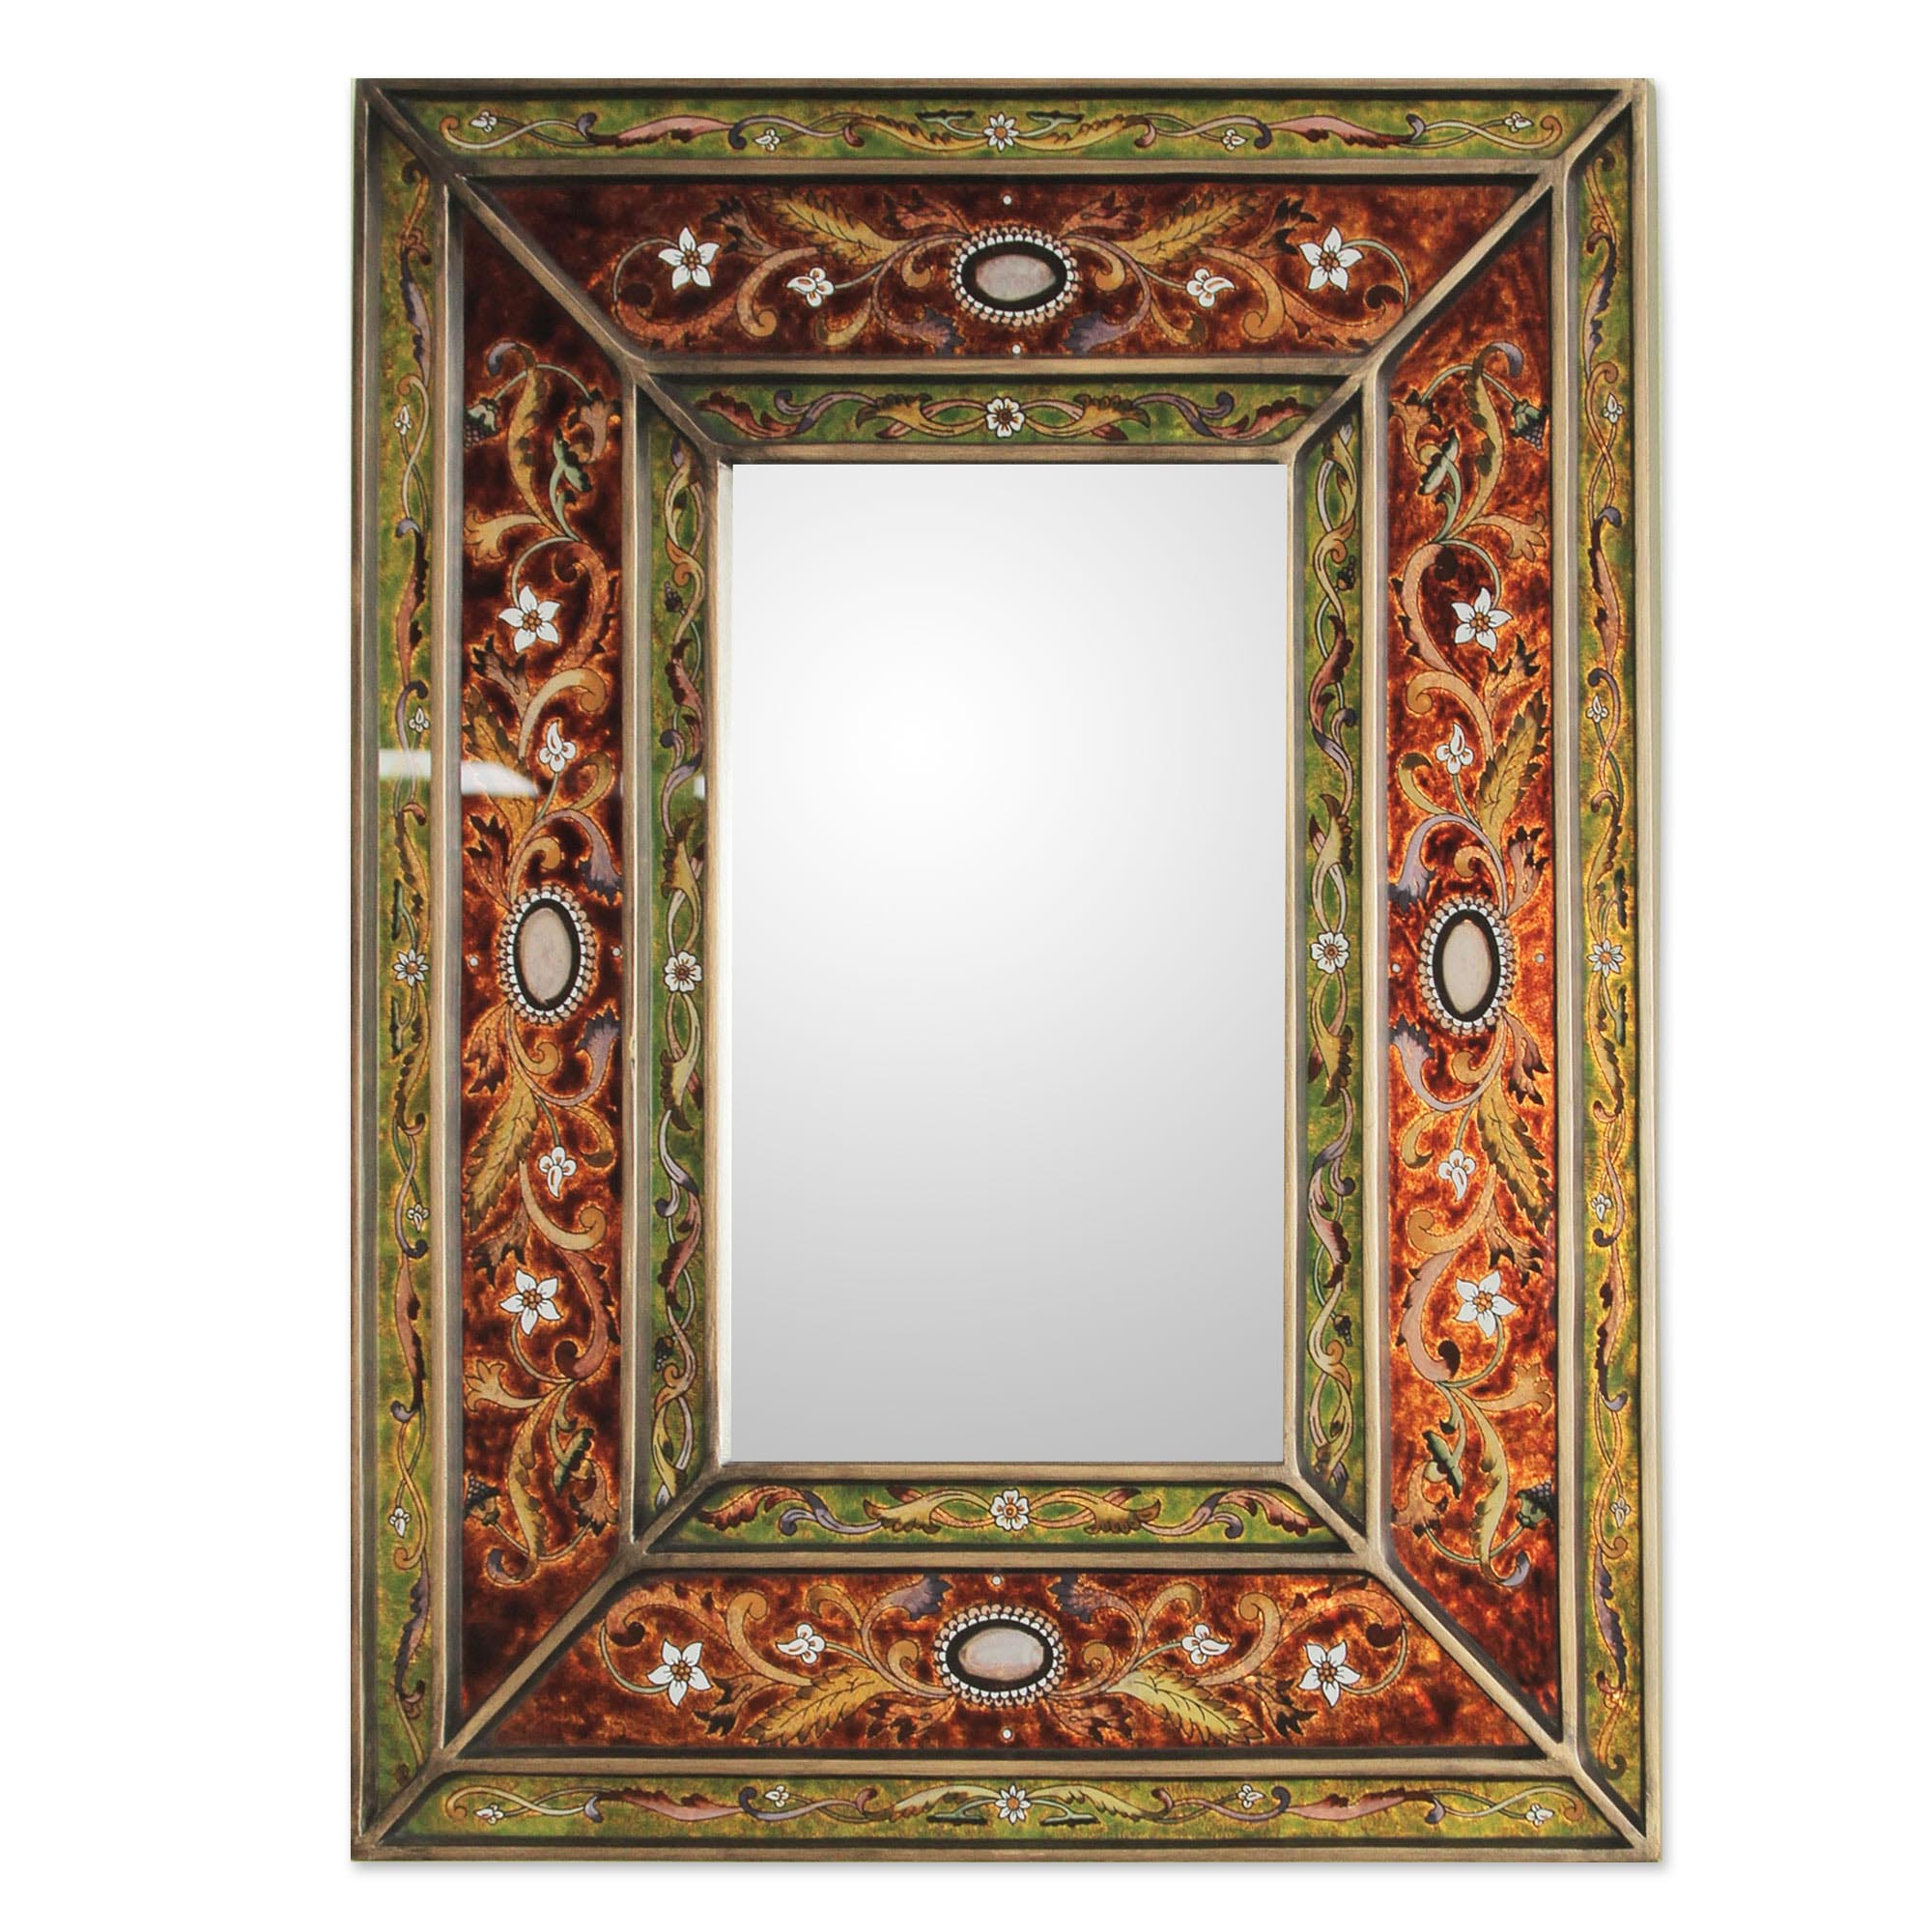 Antique Wall Mirrors Guide | Best Decor Things